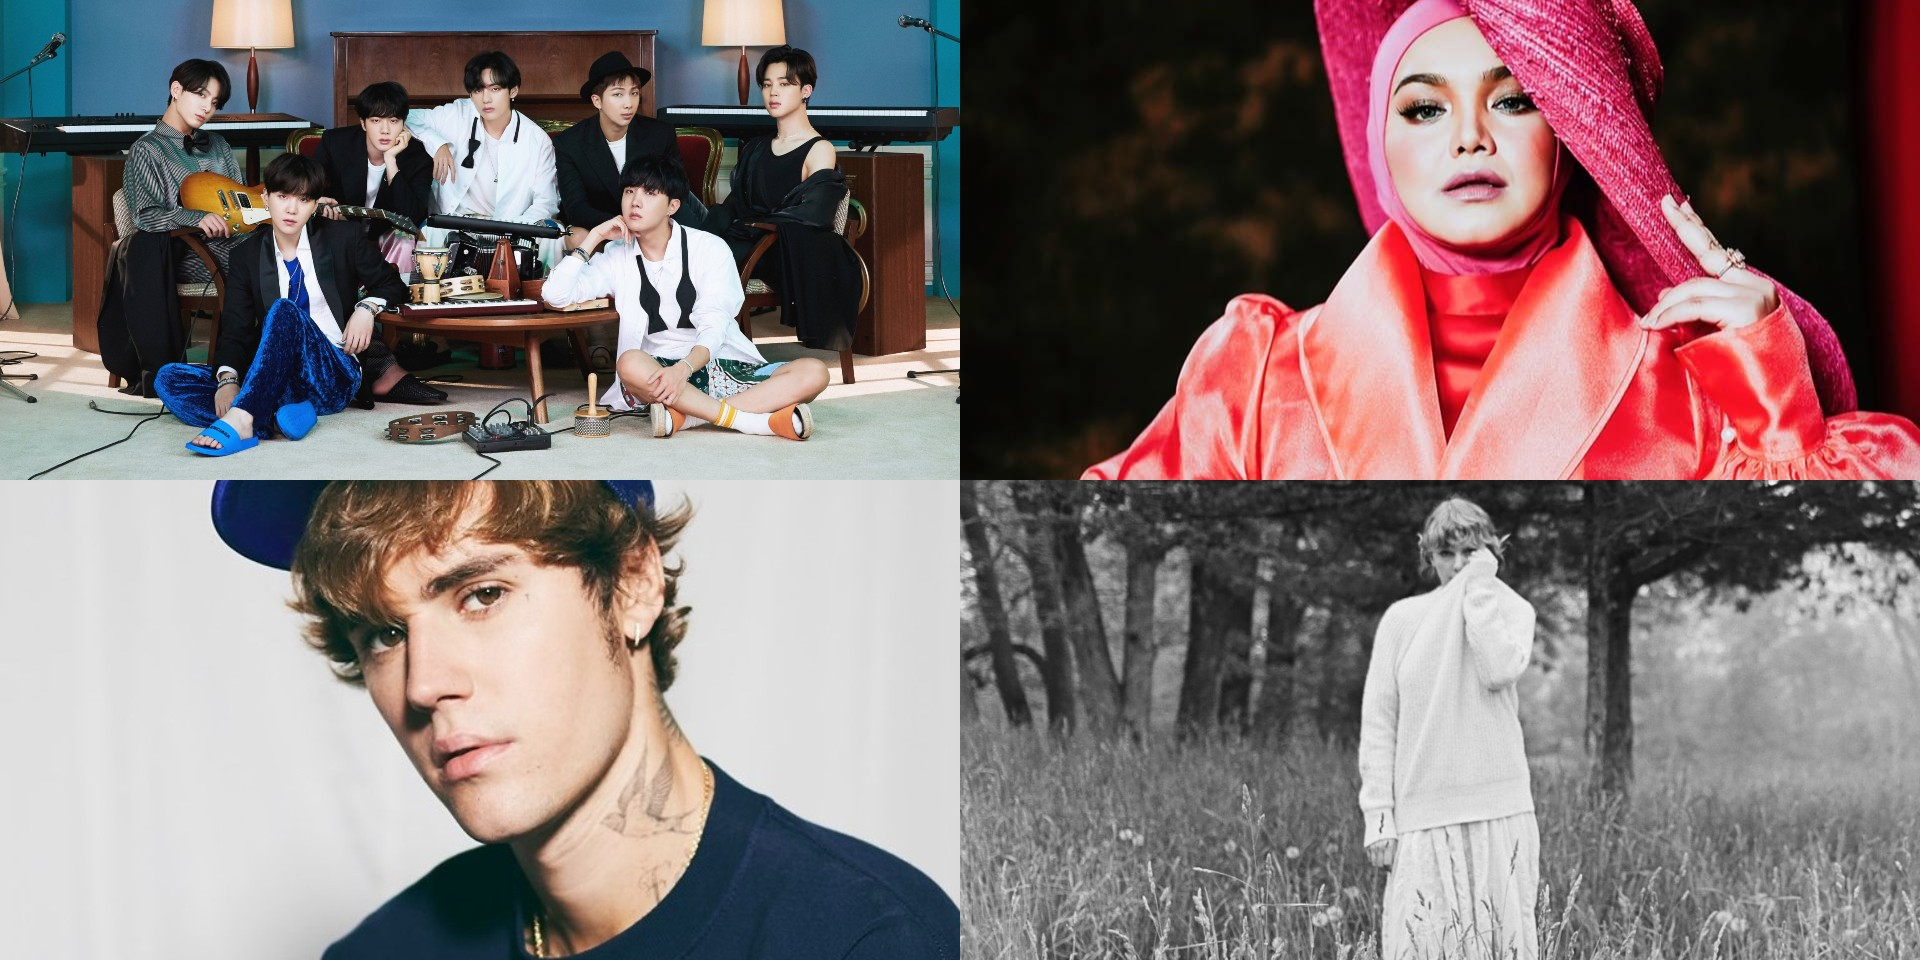 Spotify 2020 Wrapped Malaysia: BTS, Dato' Sri Siti Nurhaliza, Justin Bieber, Taylor Swift, and more emerge as most streamed artists